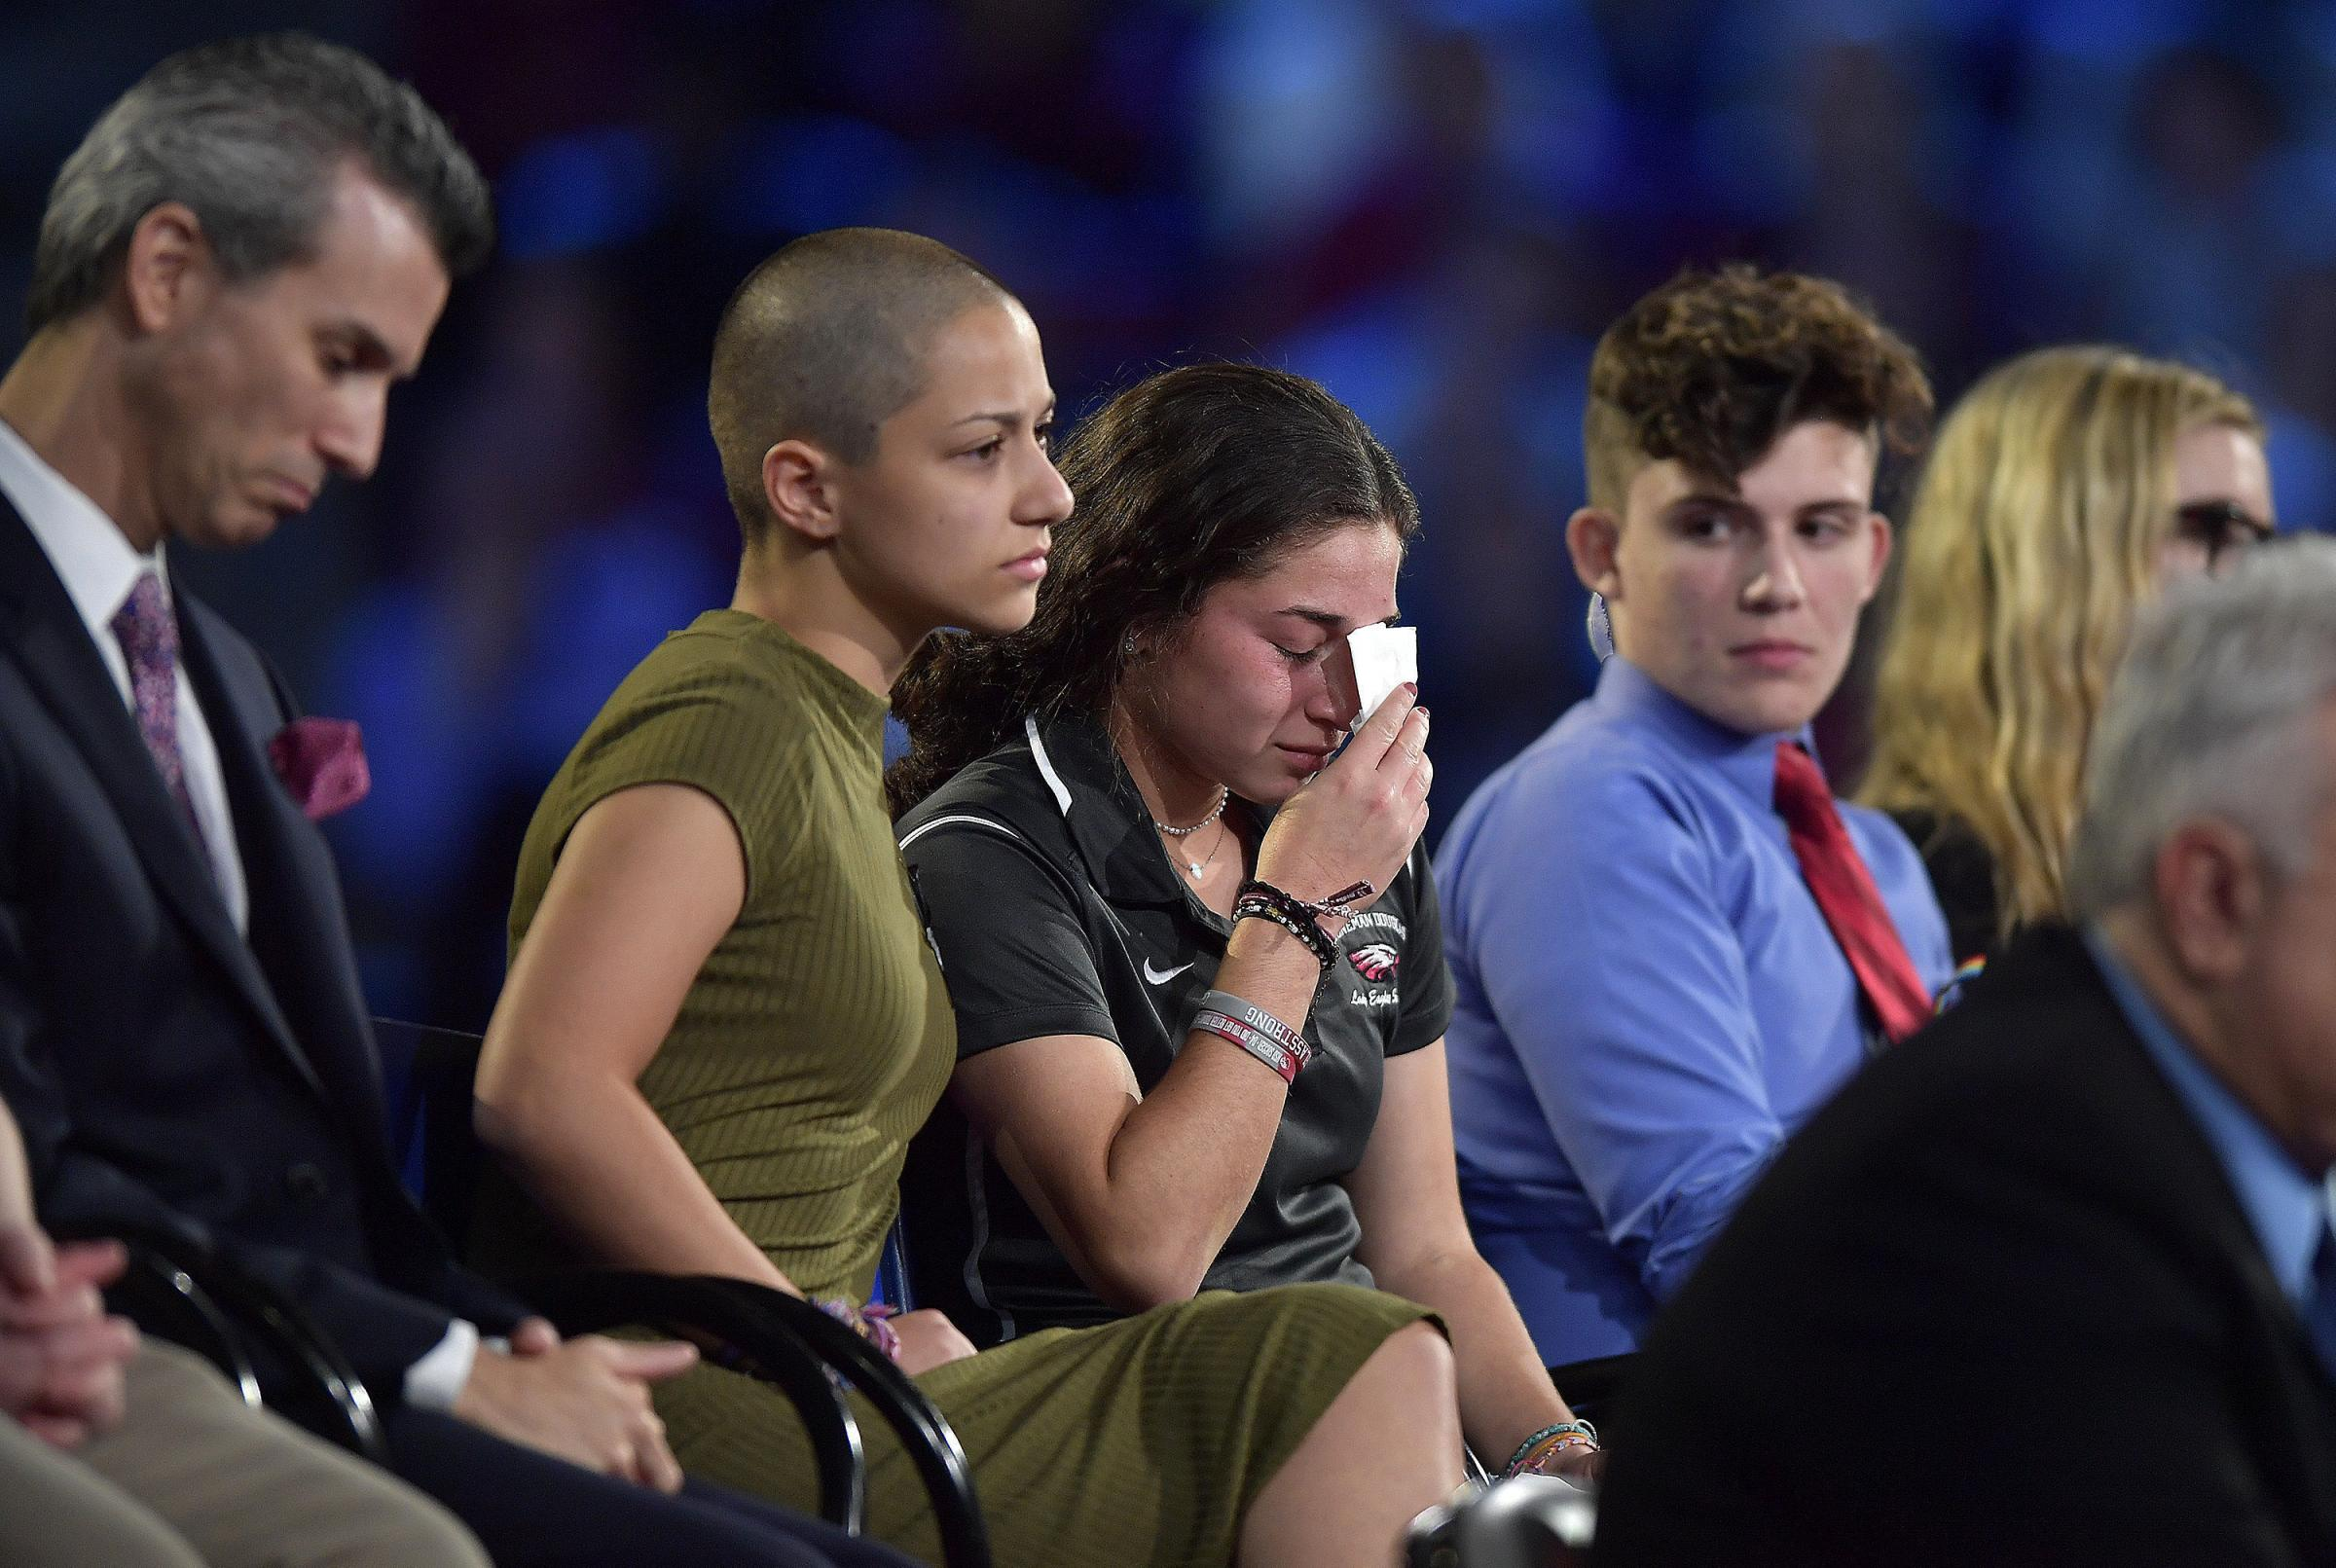 Marjory Stoneman Douglas High School student Emma Gonzalez comforts a classmate during a CNN town hall meeting Picture: AP